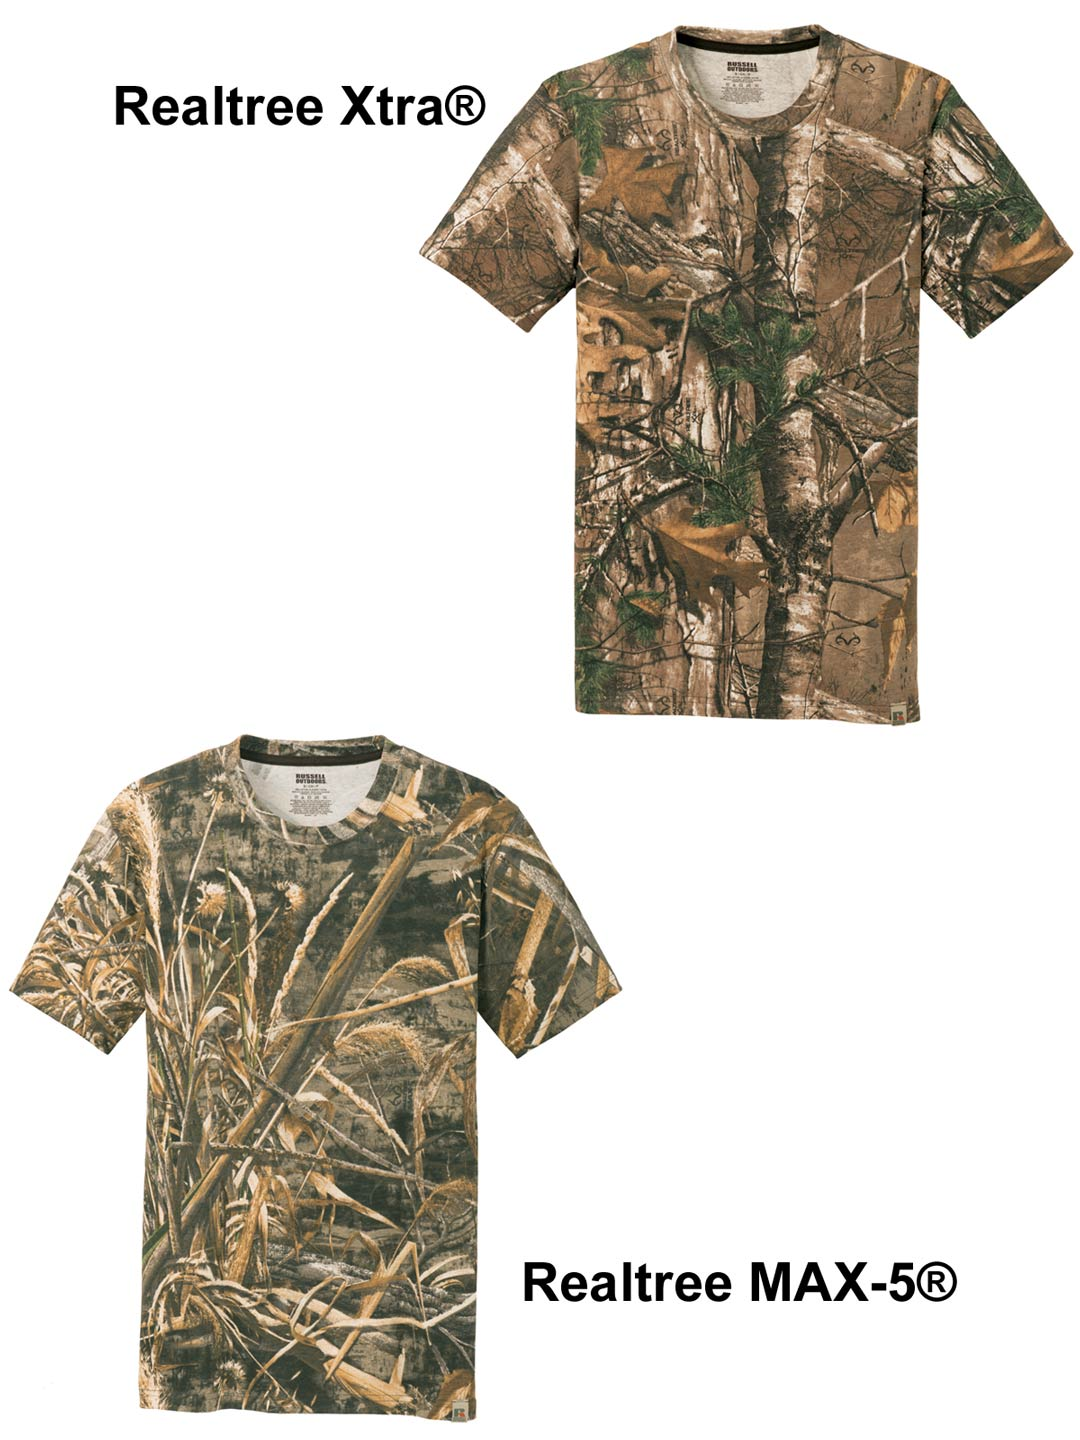 Custom camo t-shirt pattern choices